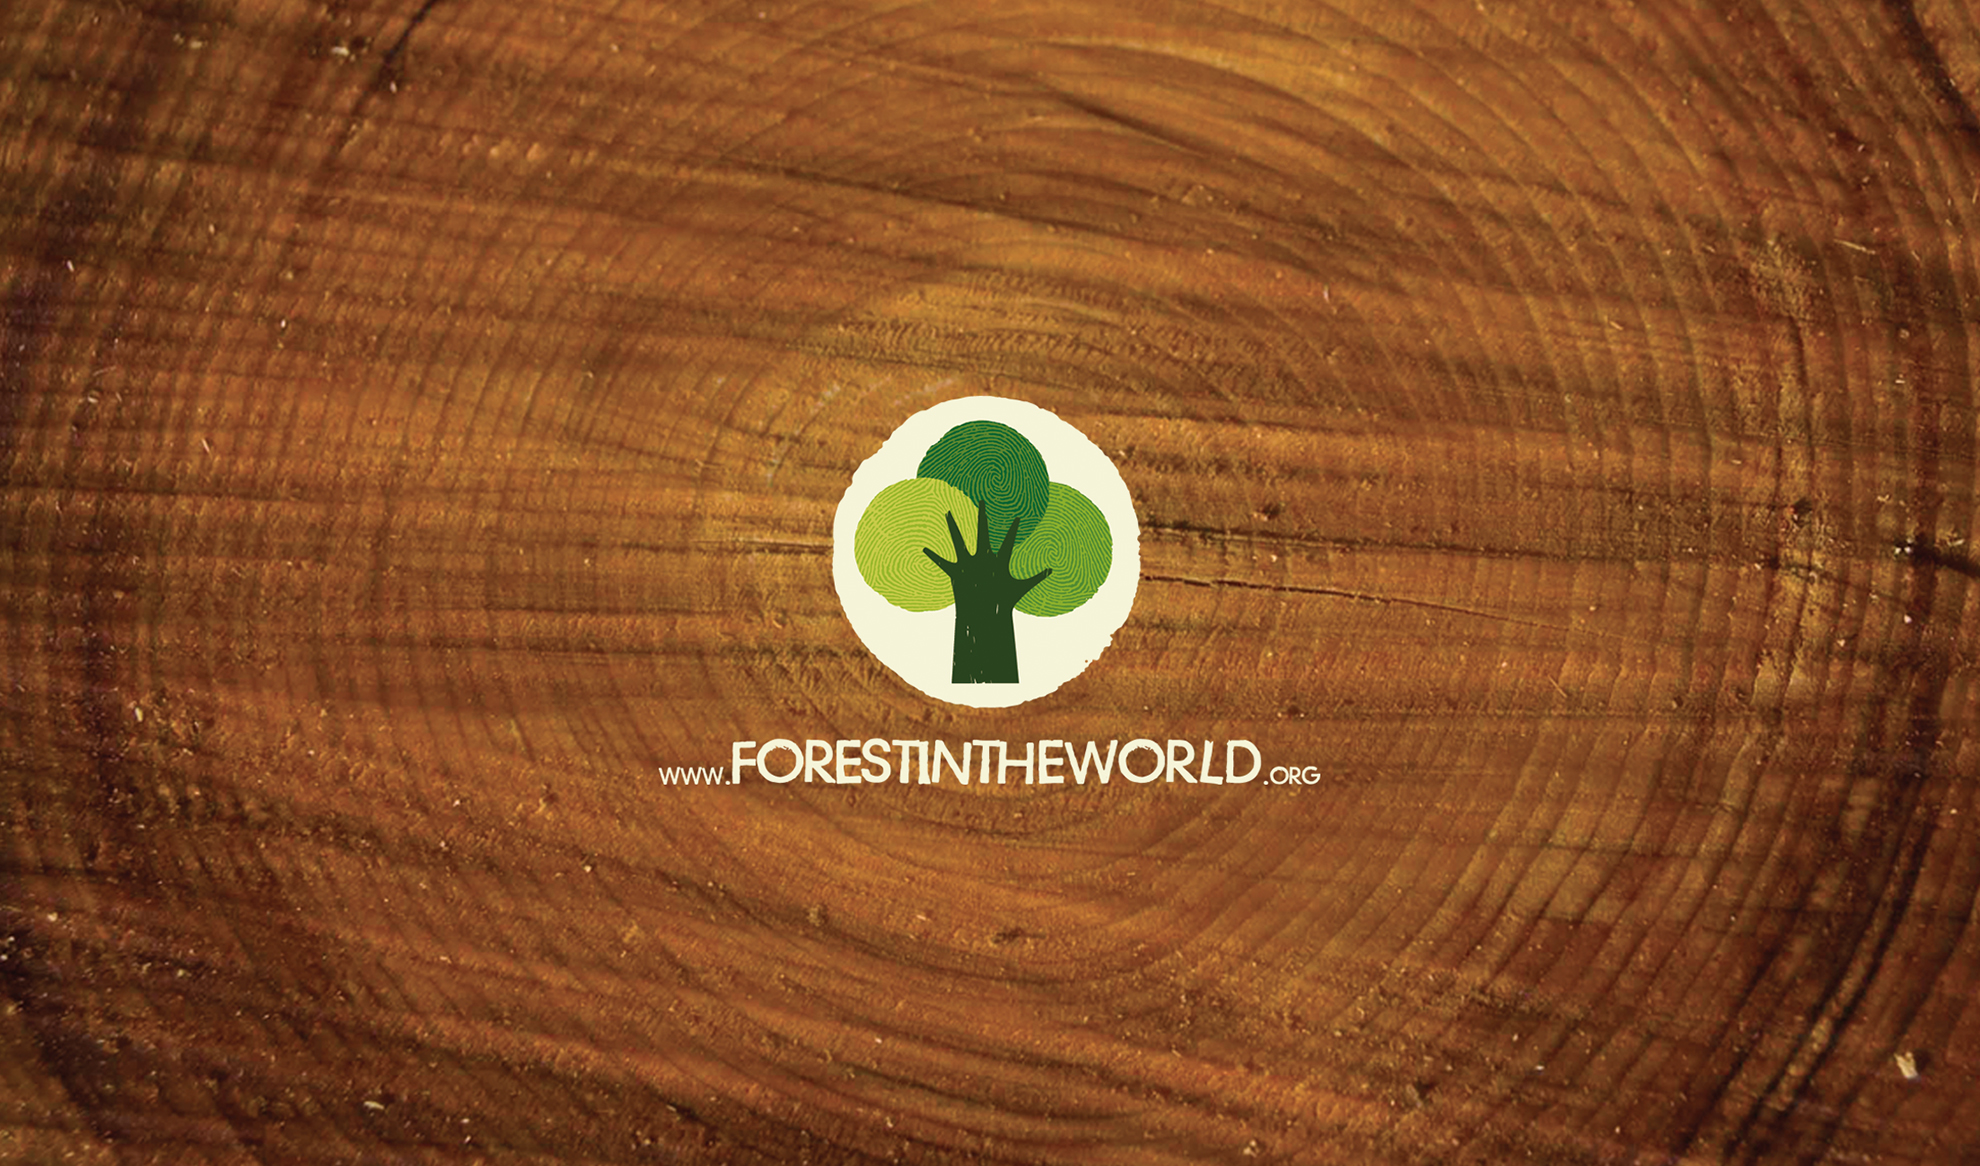 Forest in the world logo - Eleonora Casetta